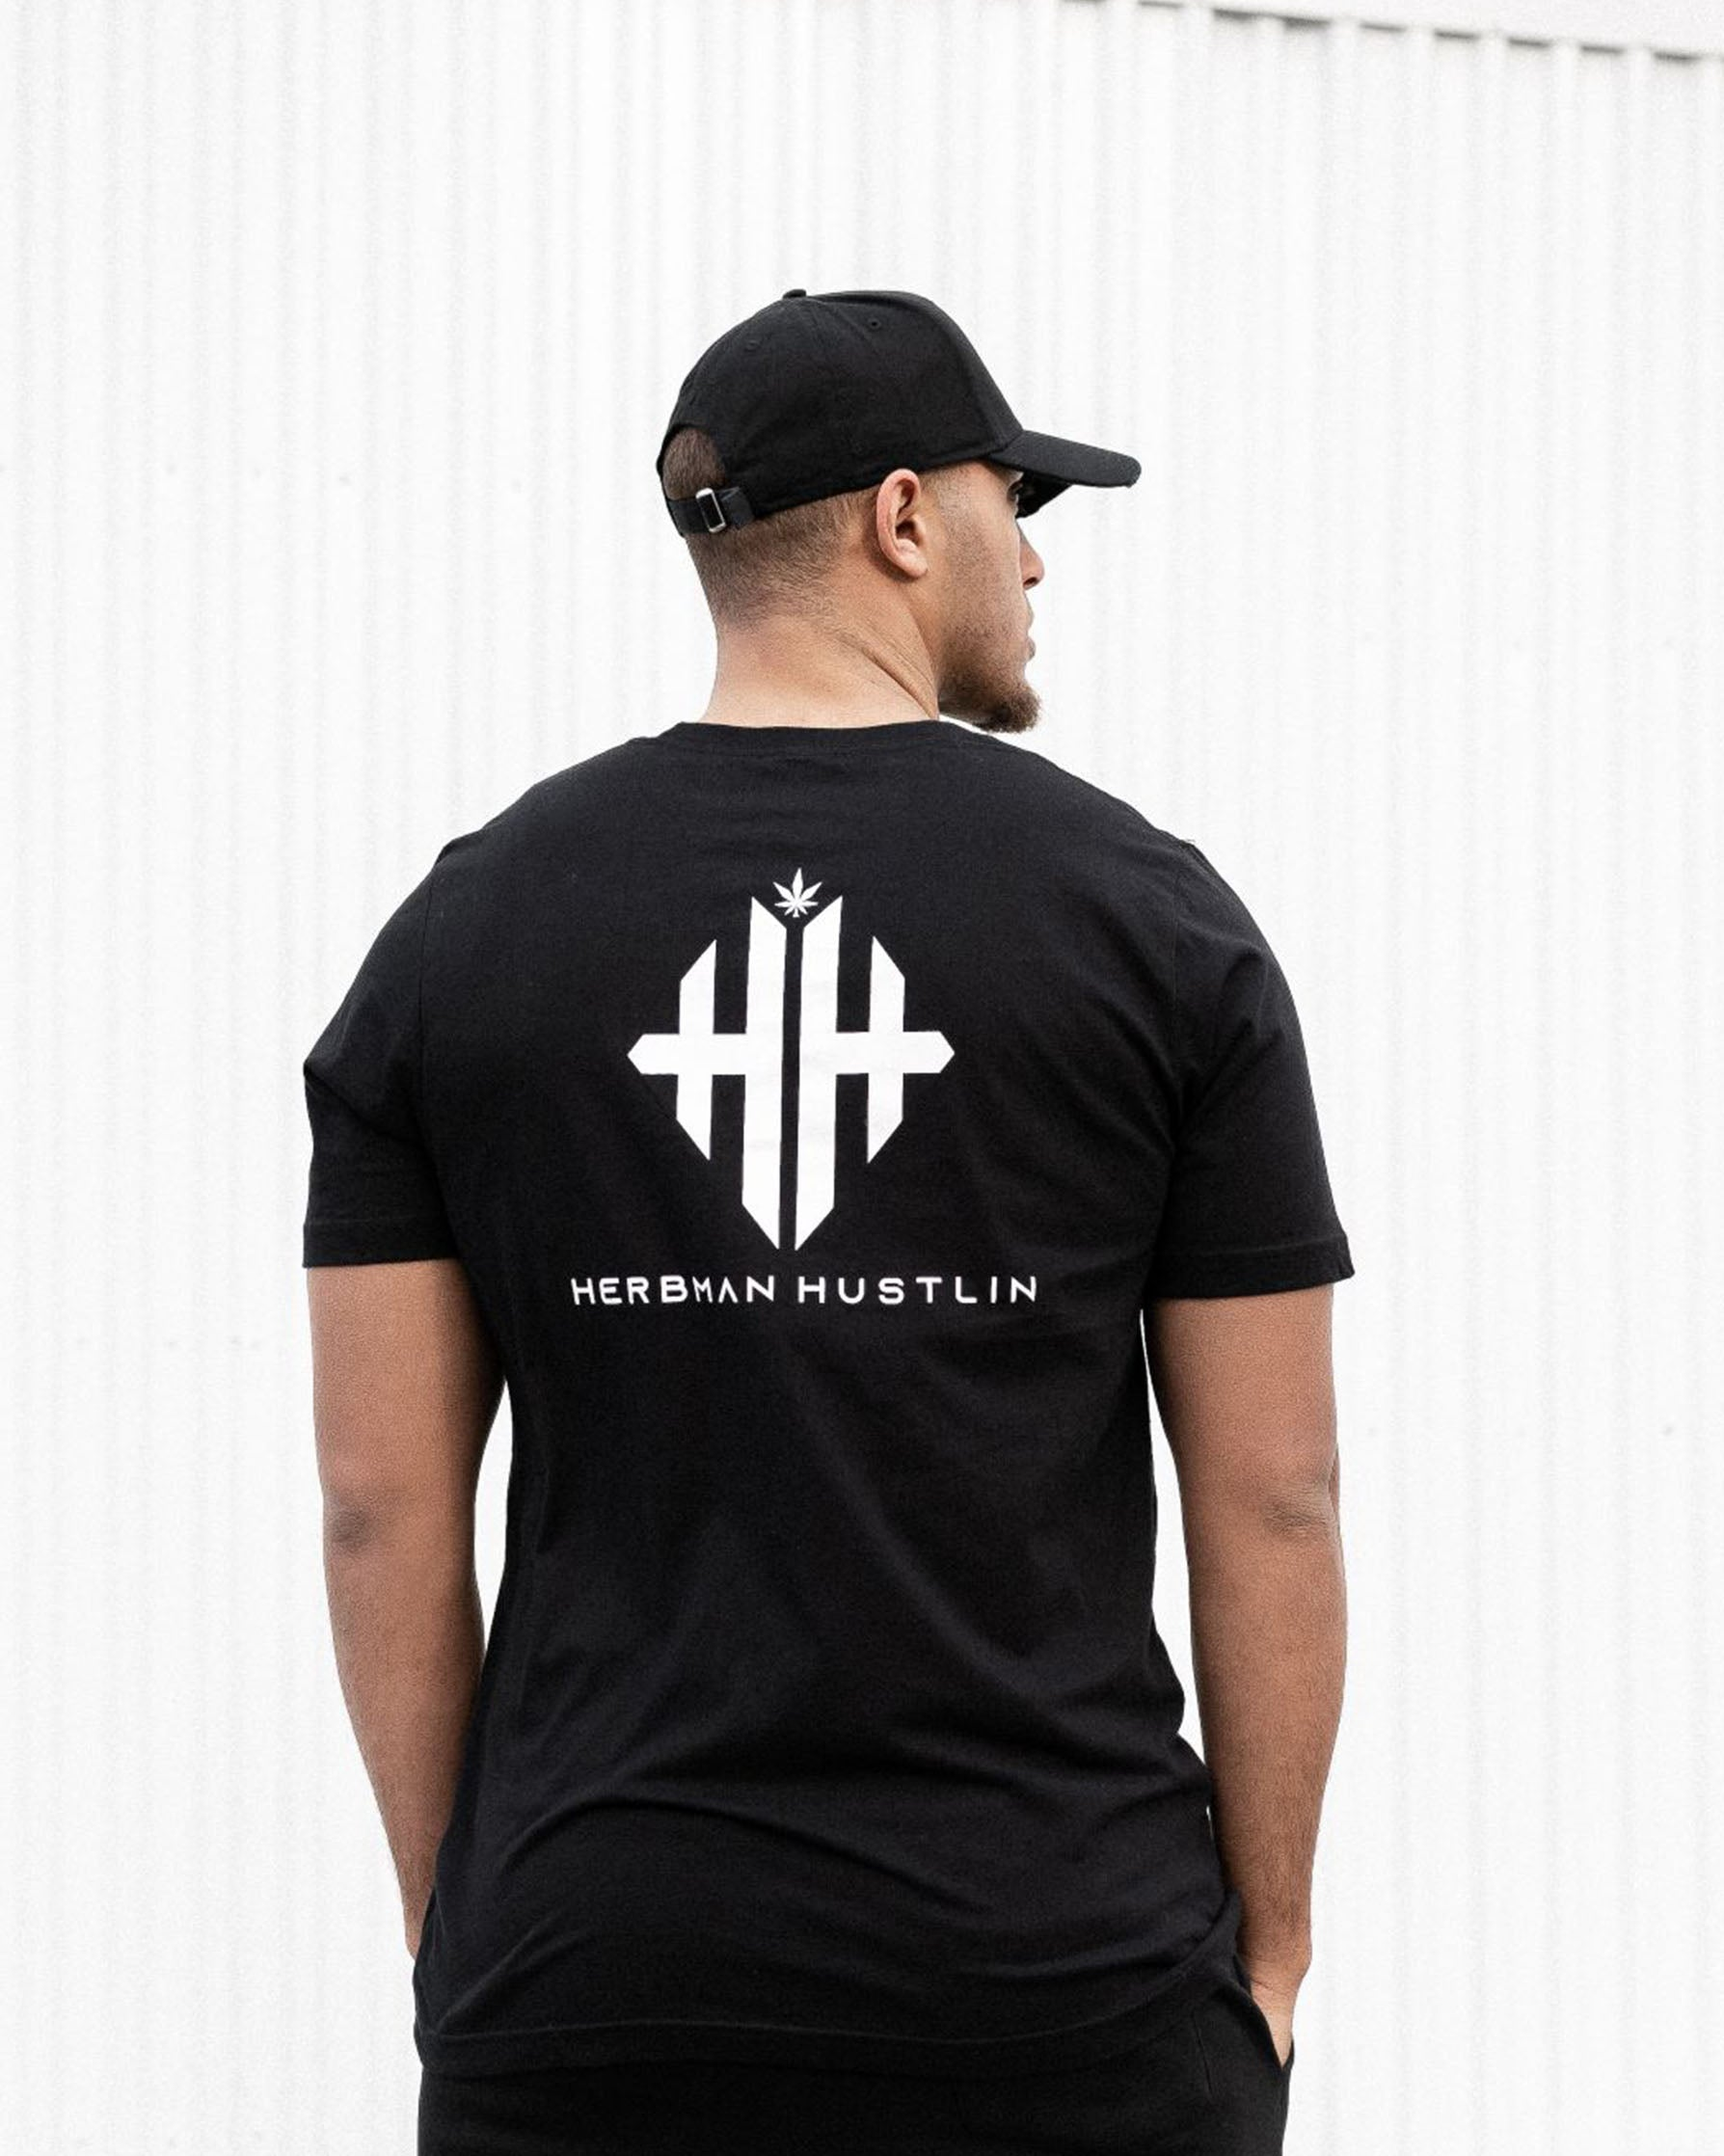 Herbman Hustlin Monogram Back Print Tee - Black/White - Back